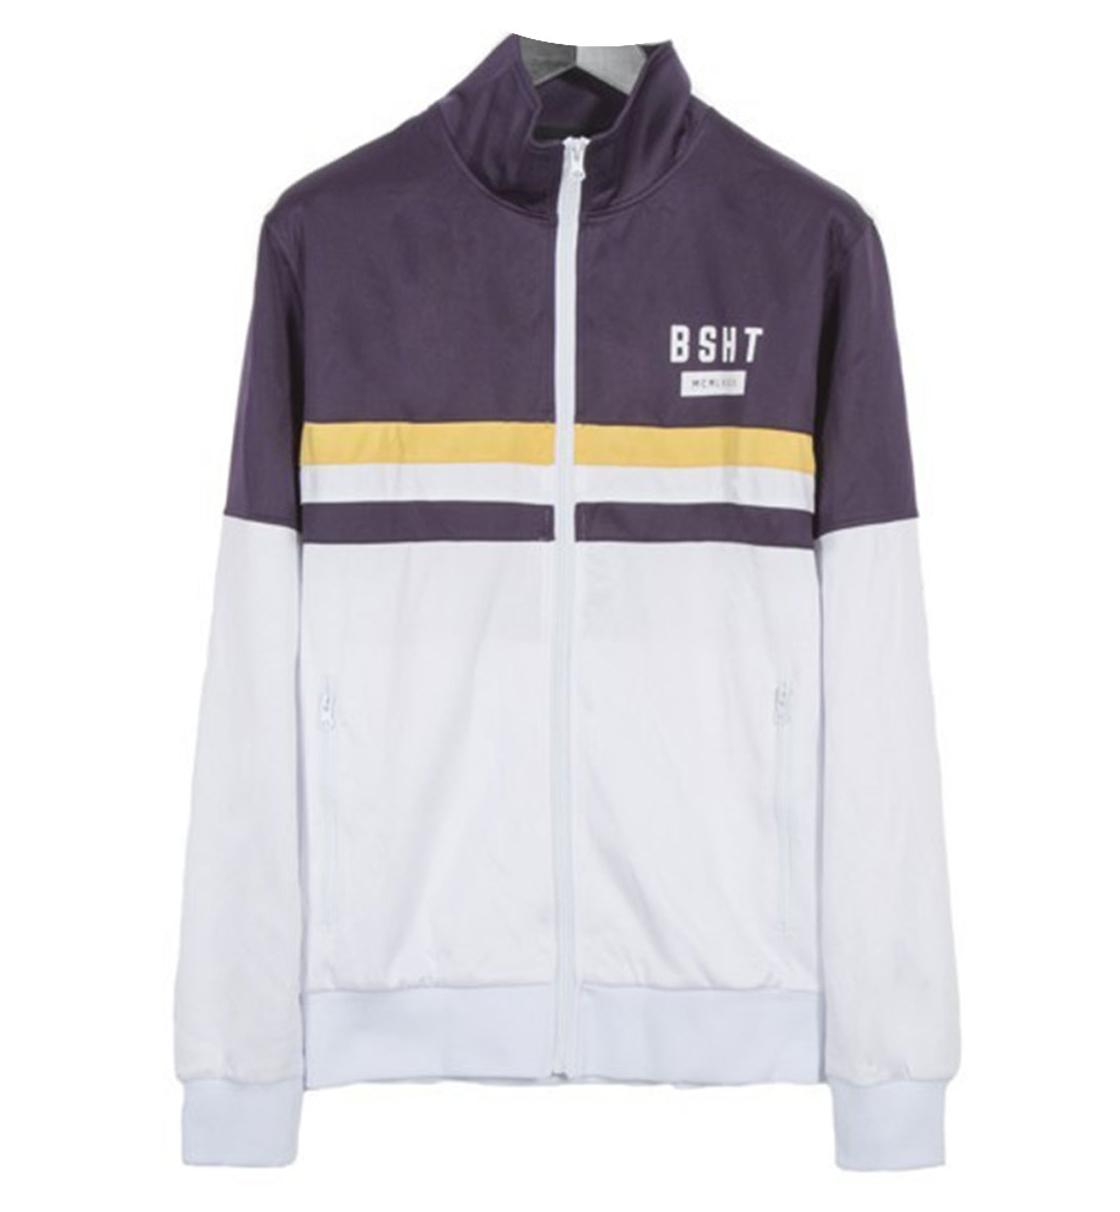 Basehit Ανδρική Ζακέτα Men'S Zip Up Track Jacket BM23.06